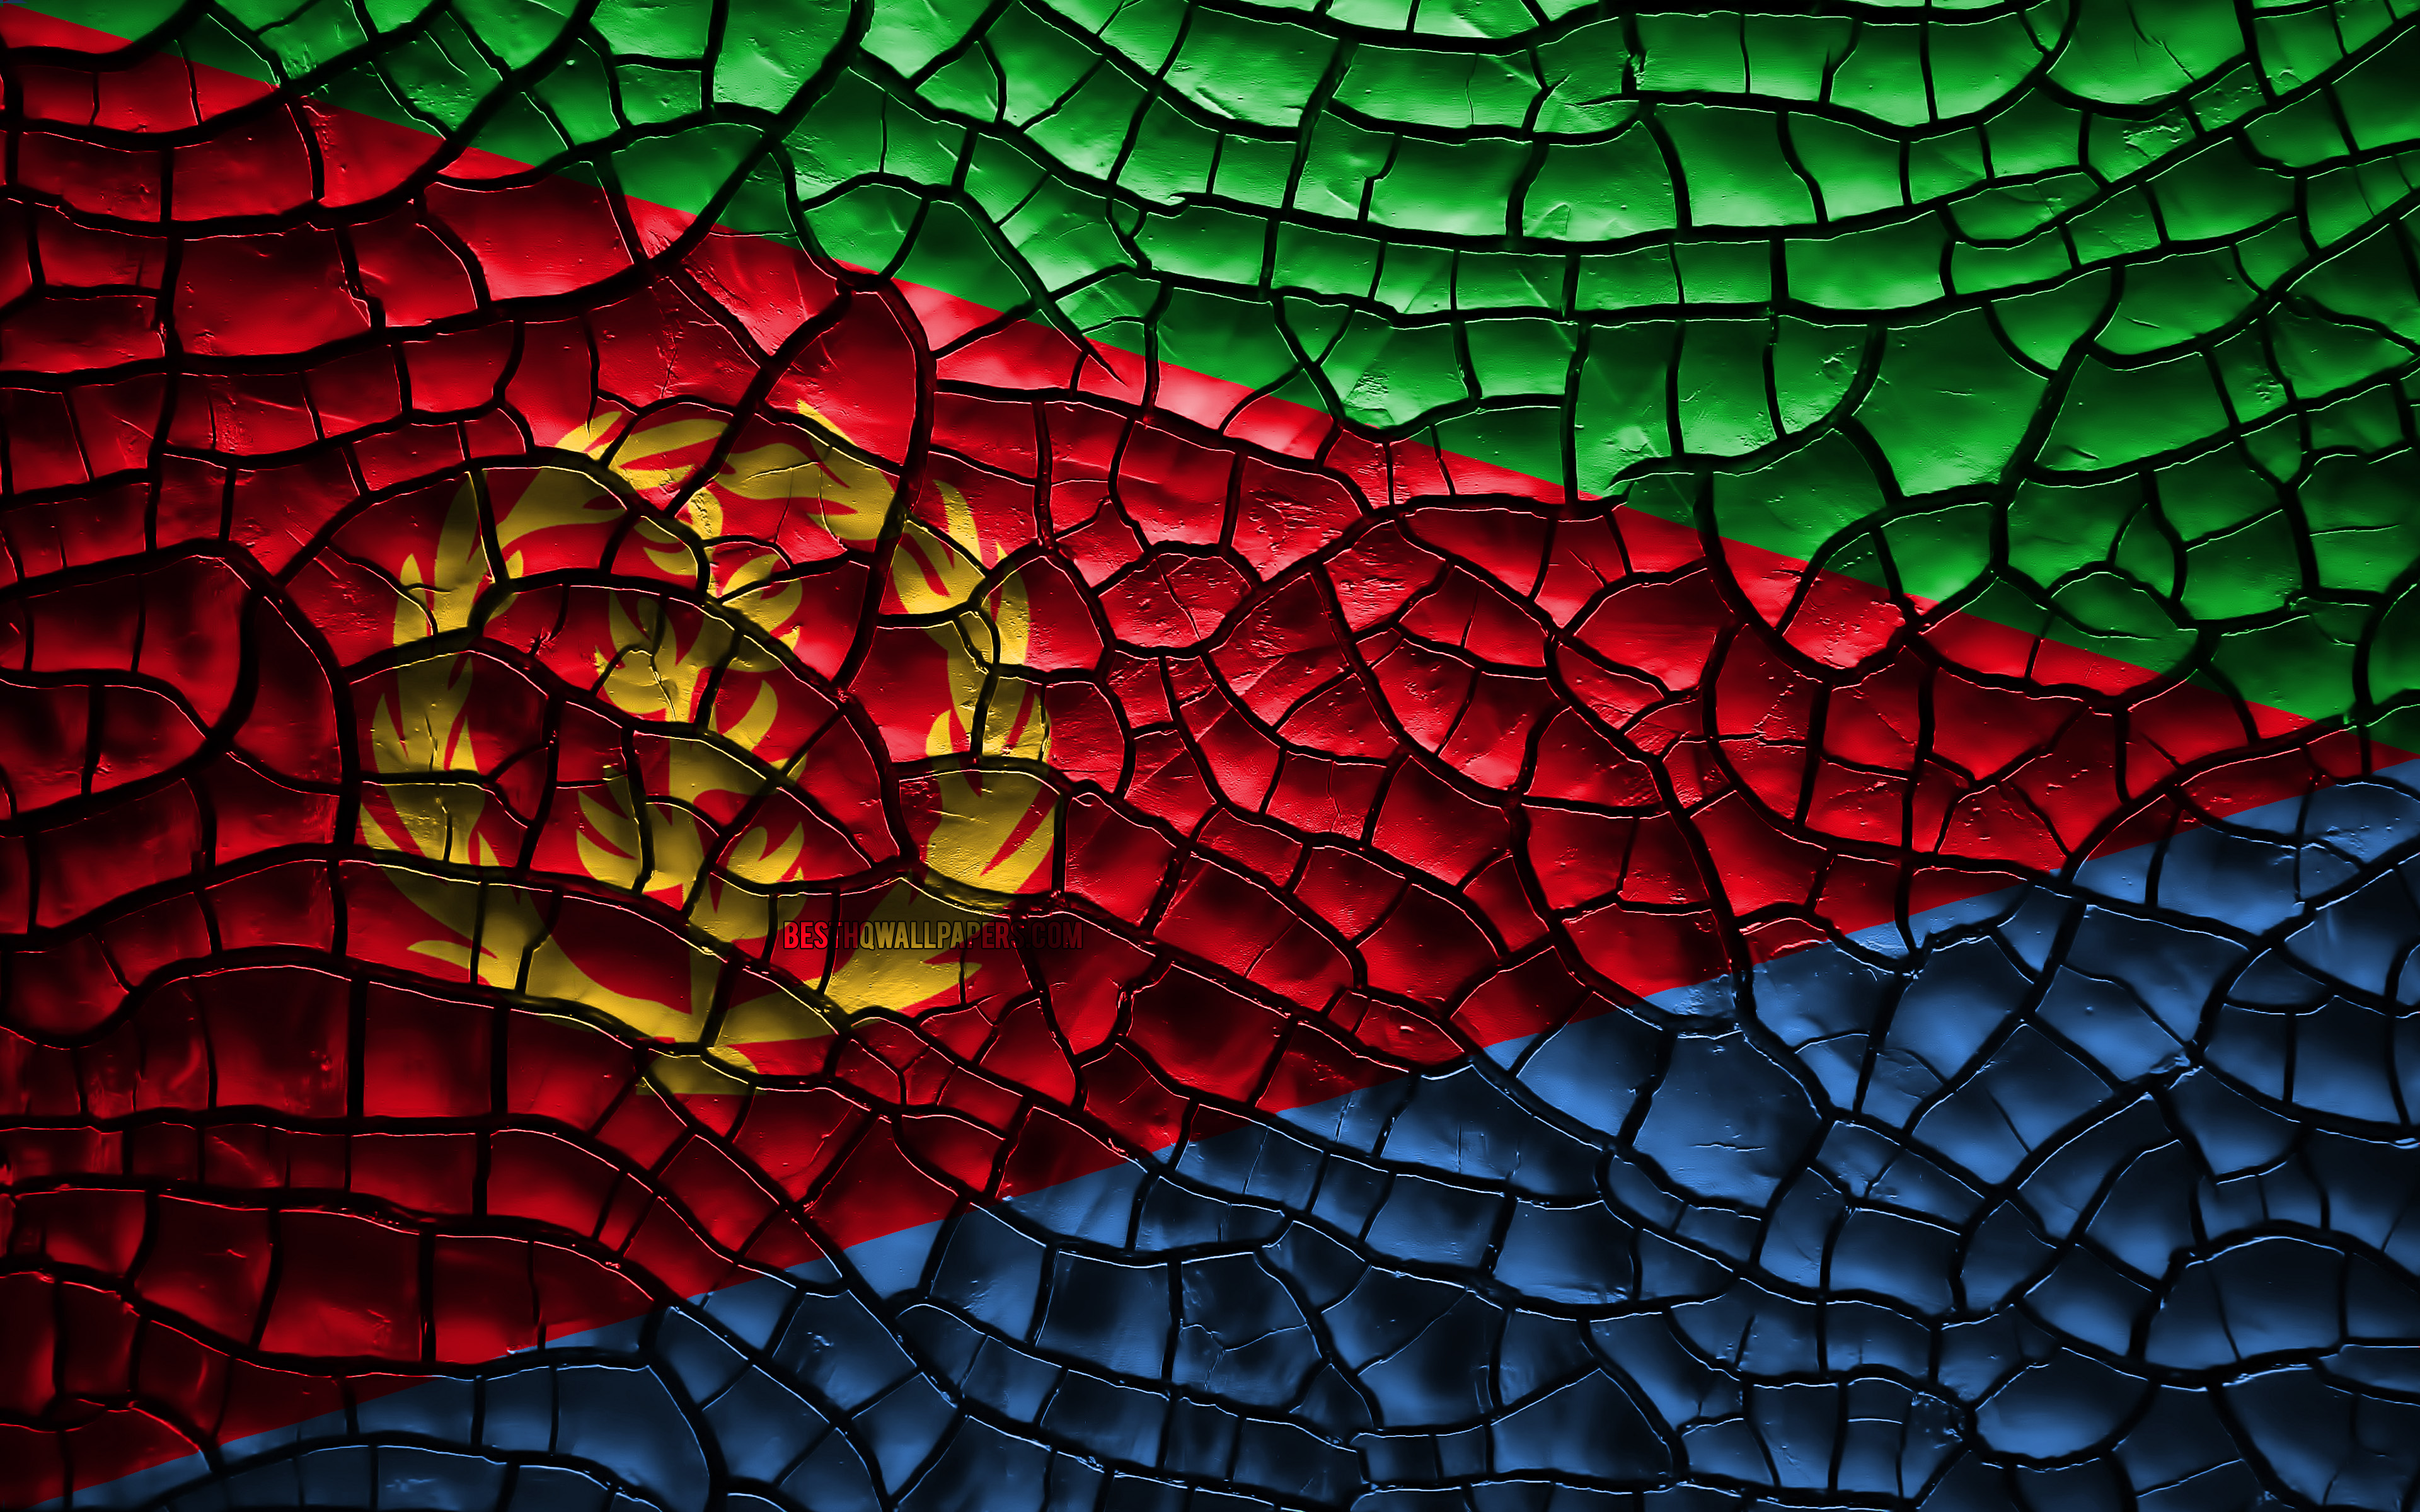 Download wallpapers Flag of Eritrea 4k cracked soil Africa 3840x2400